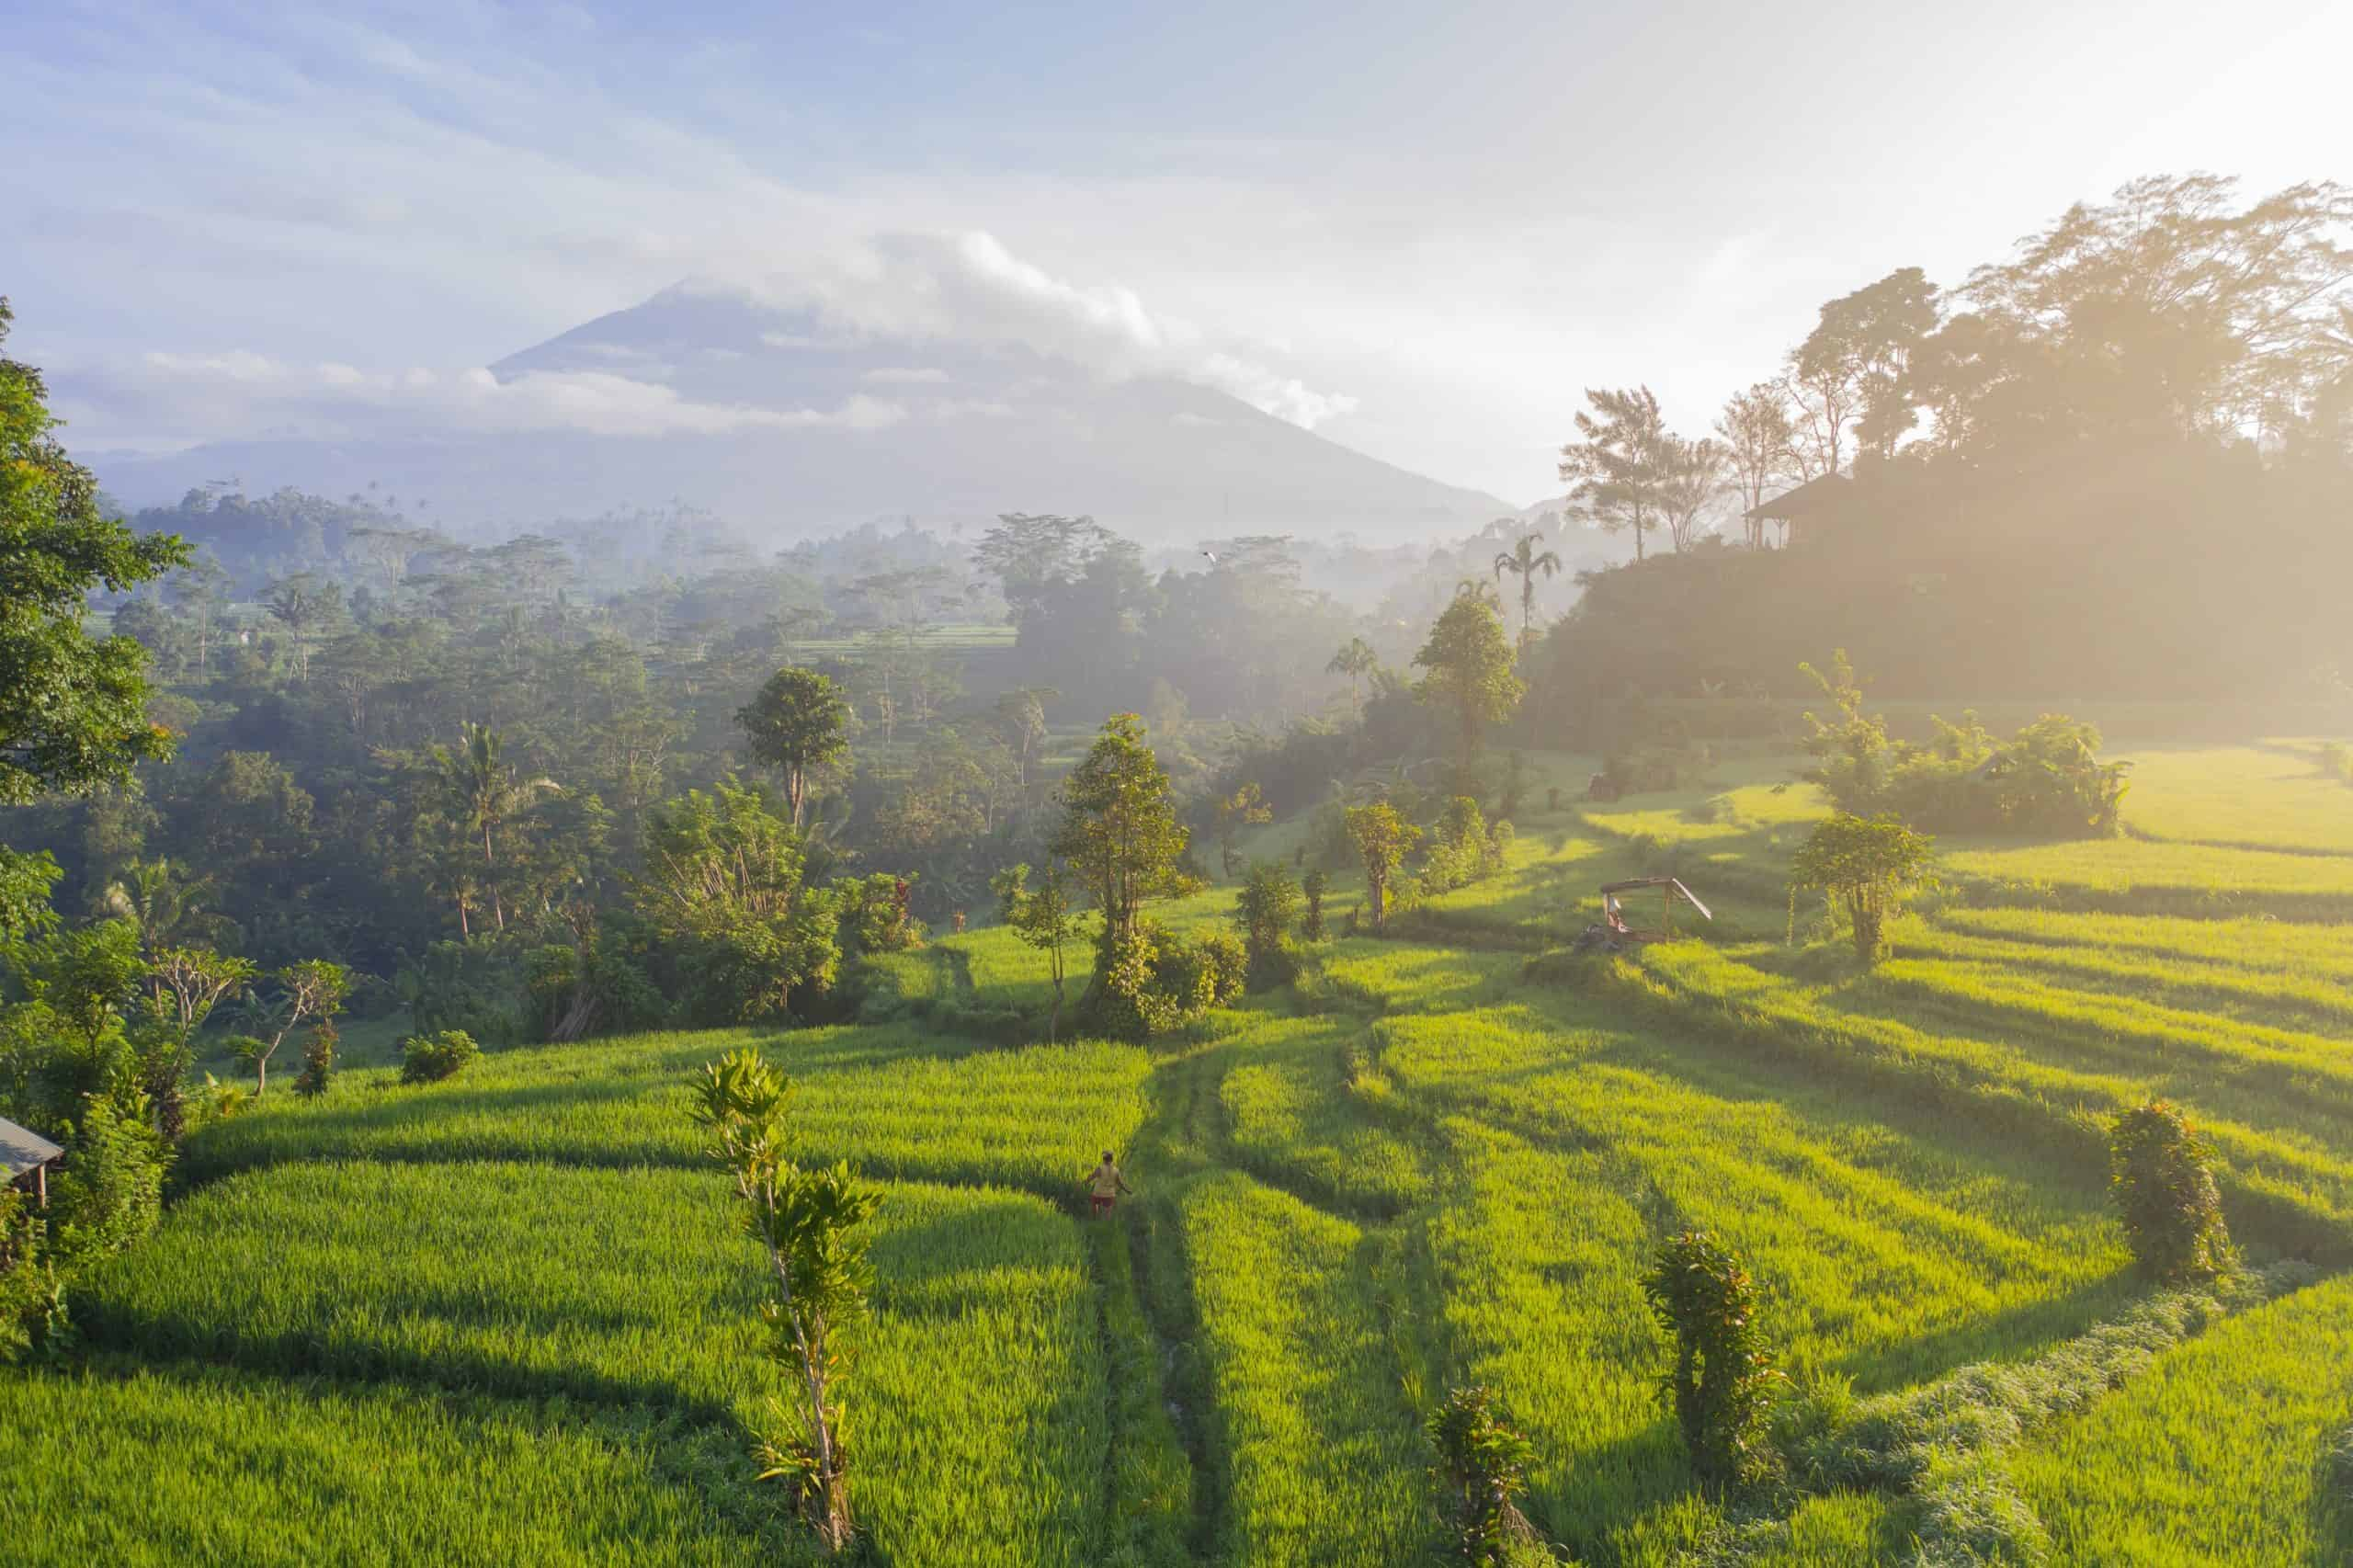 The Top 10 Things To Do in Bali: World Class Backpacking